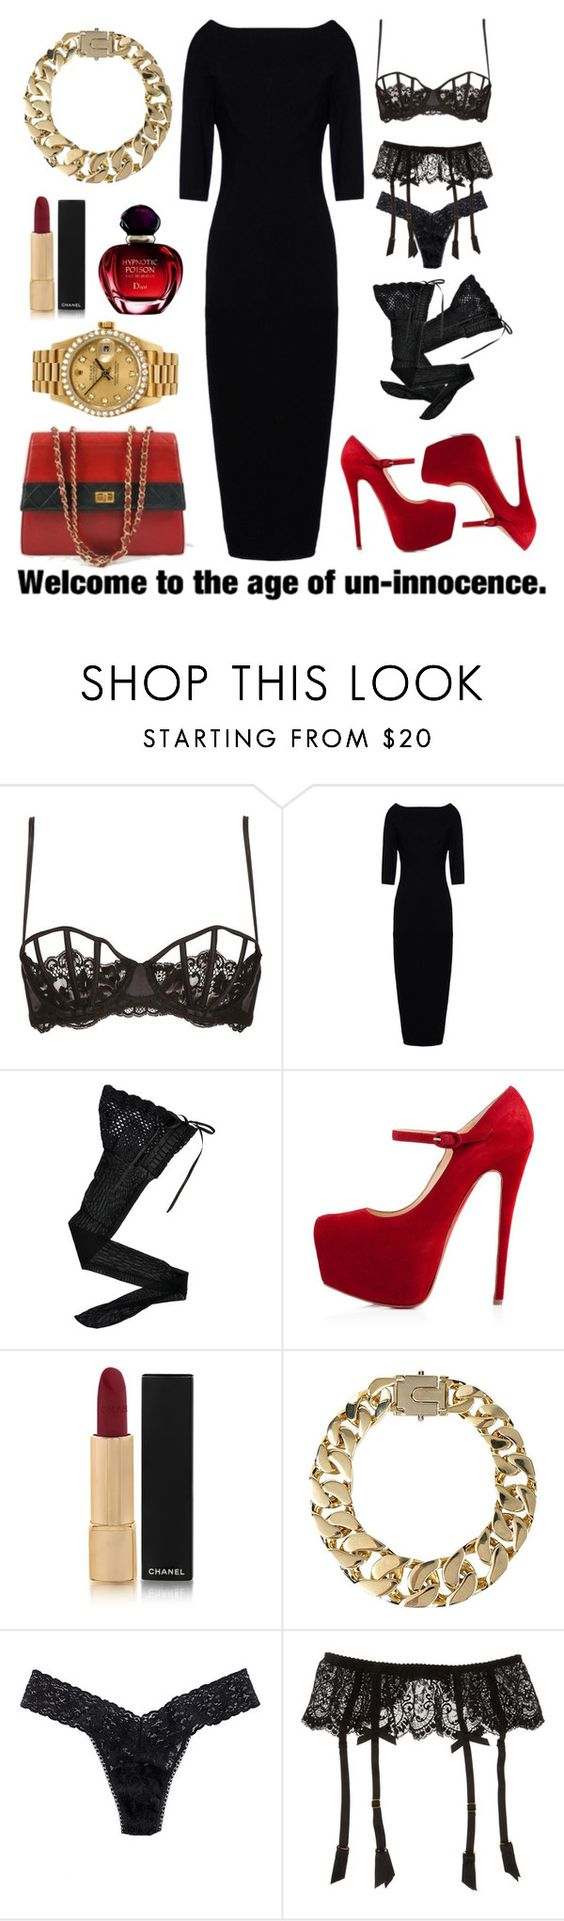 """S*X IT UP!"" by labriana29 ❤ liked on Polyvore featuring La Perla, Rick Owens, HYD, Christian Louboutin, Chanel, Christian Dior, AllSaints, Rolex, Hanky Panky and L'Agent By Agent Provocateur"